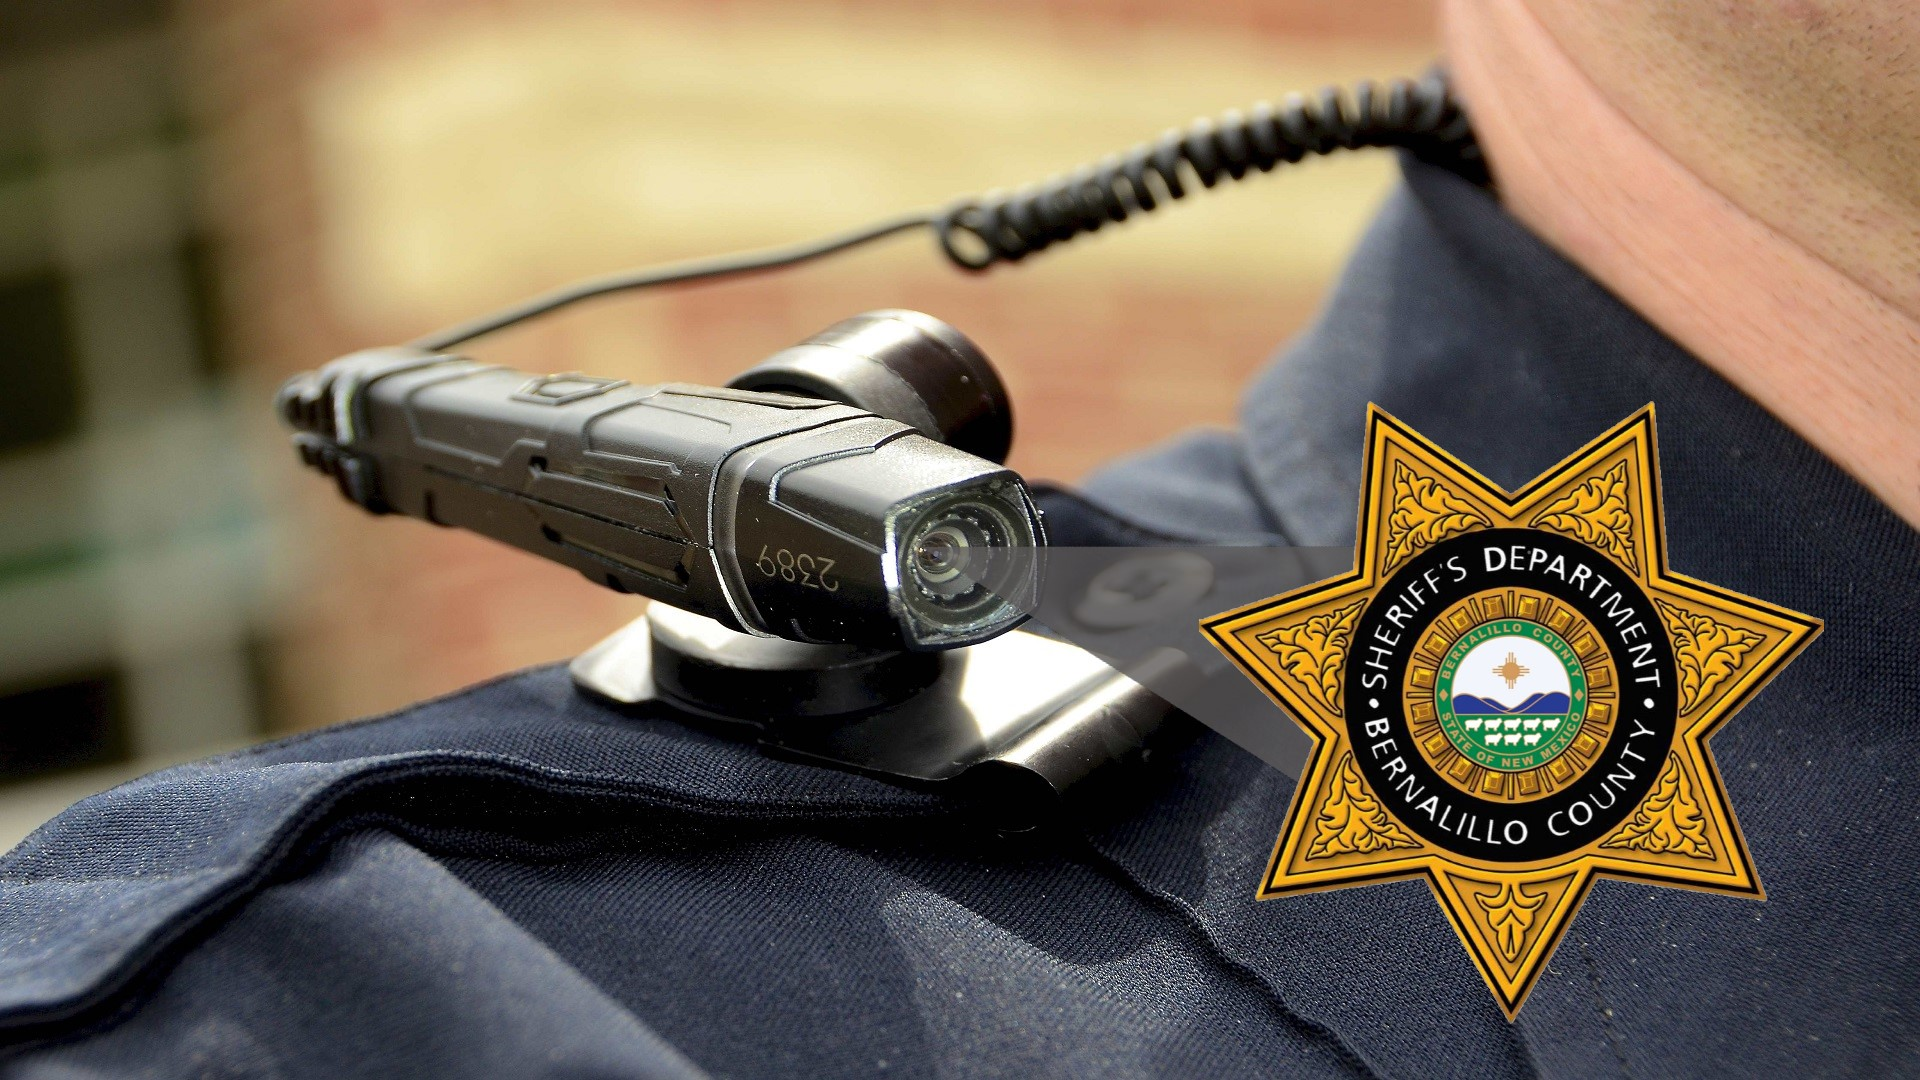 1316 Line Bernco Body Cams